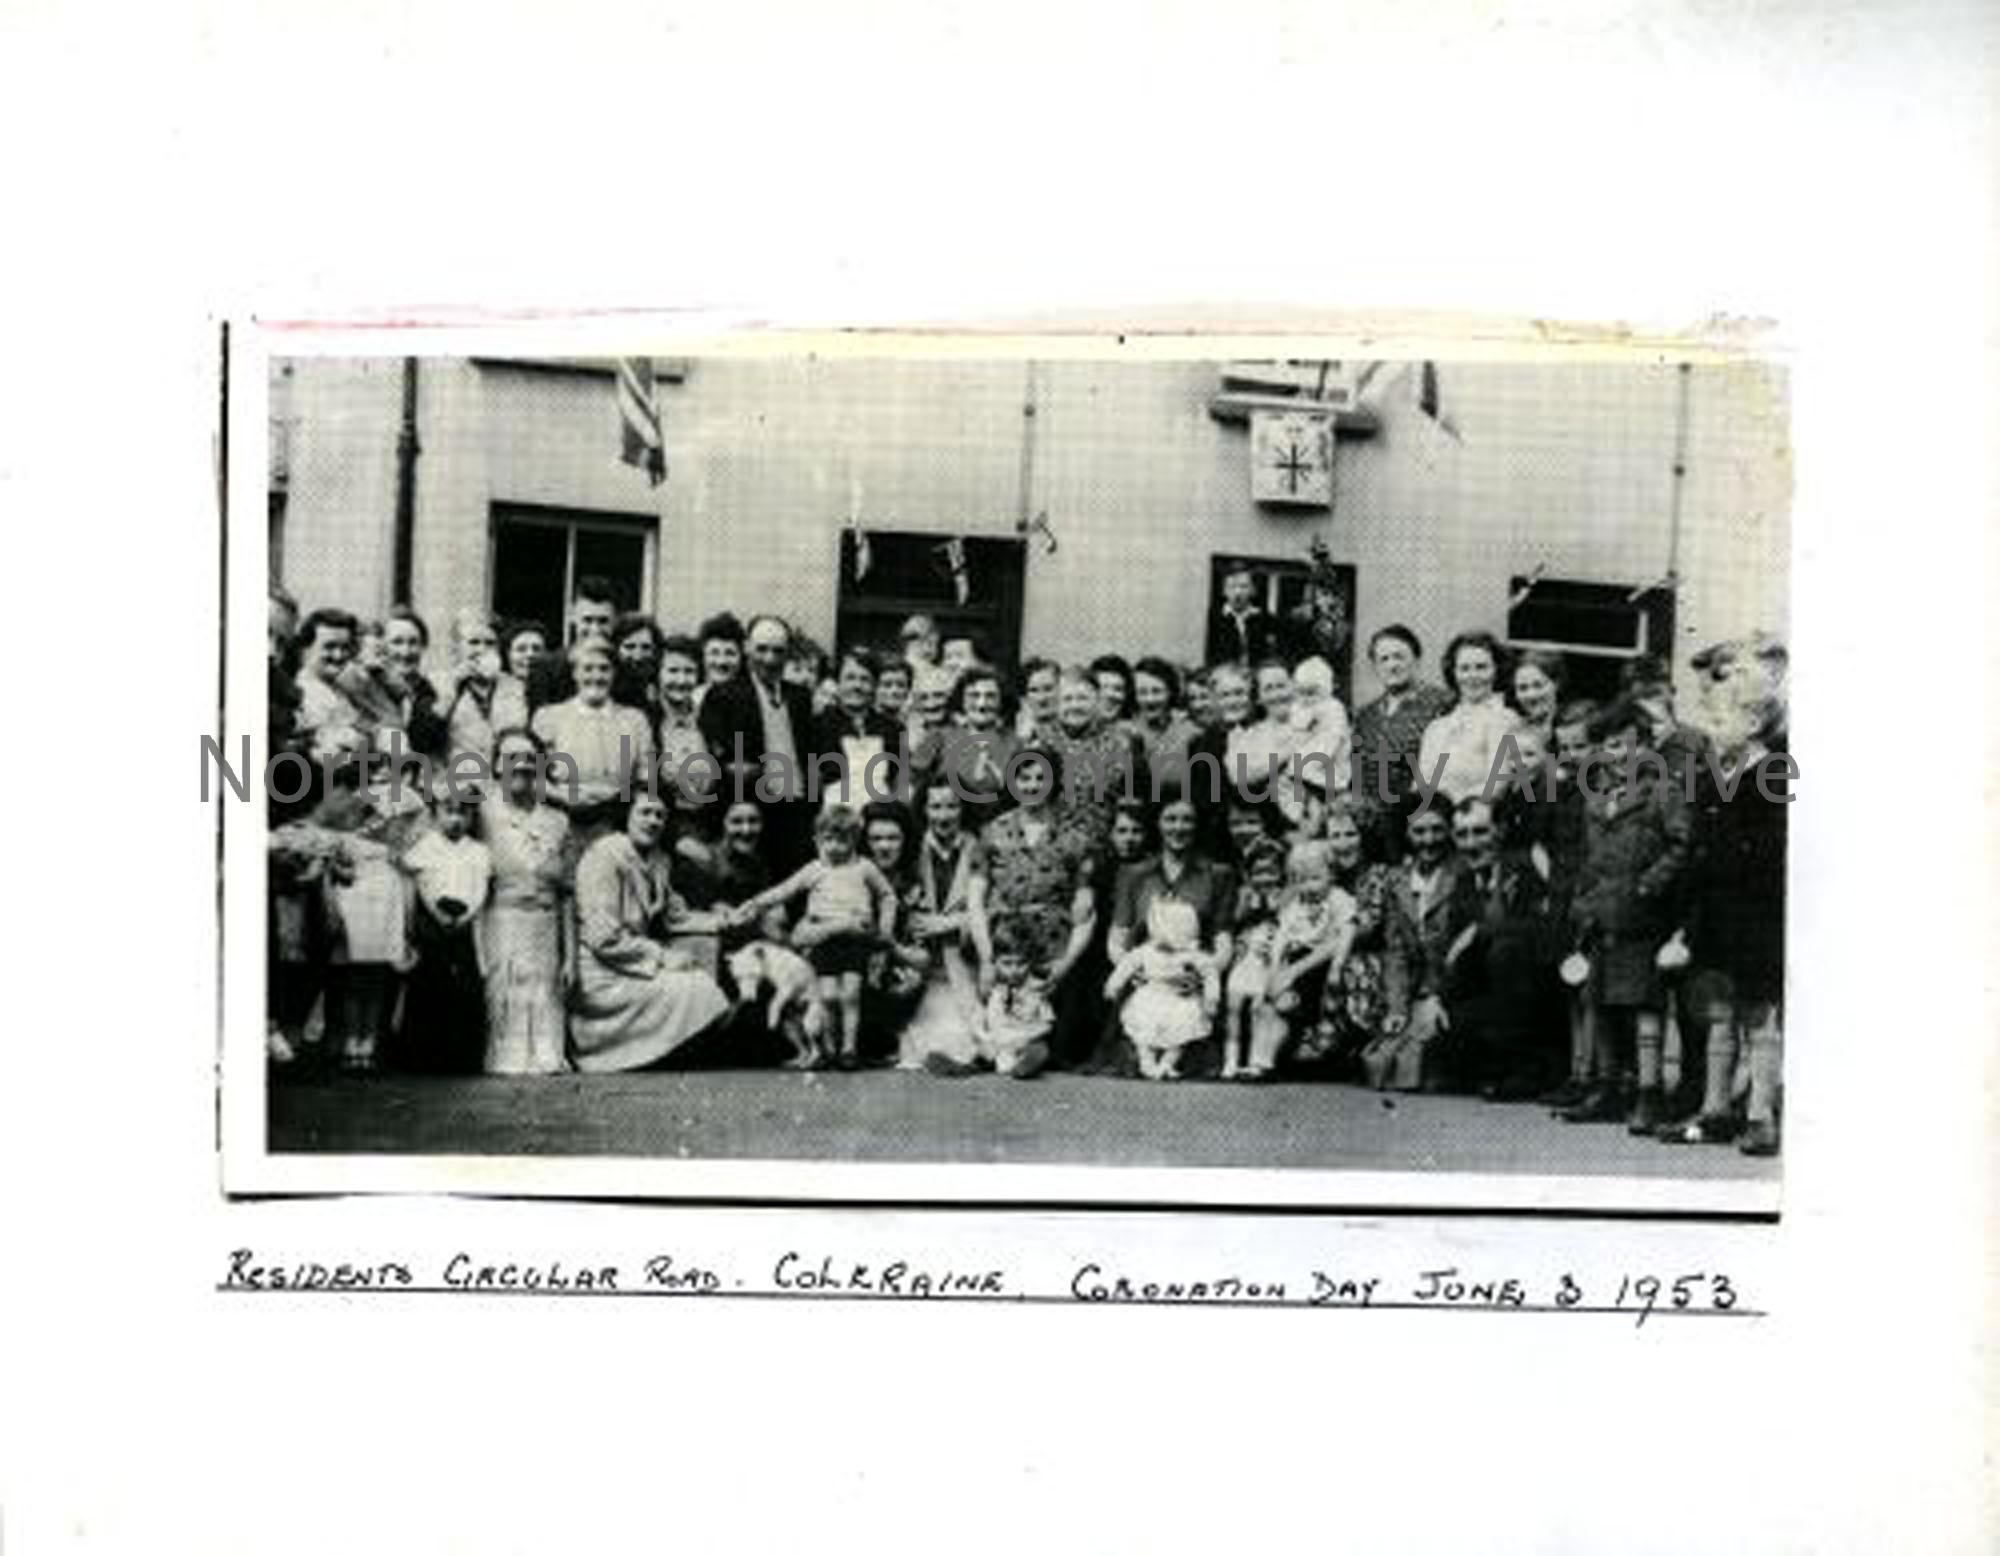 Residents of Circular Road, Coleraine, Coronation Day, 3rd June 1953